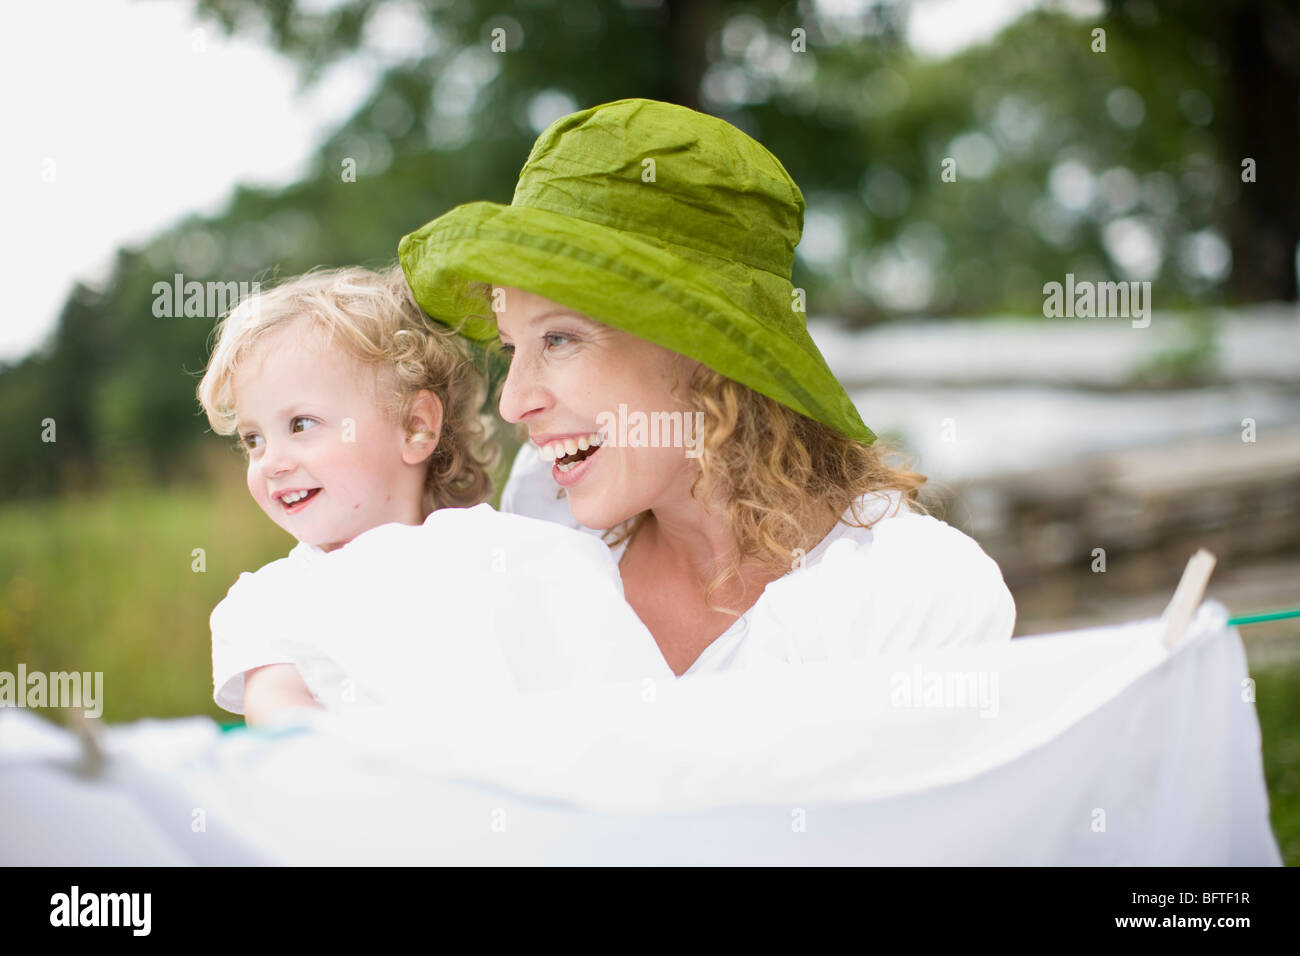 mother and little child - Stock Image